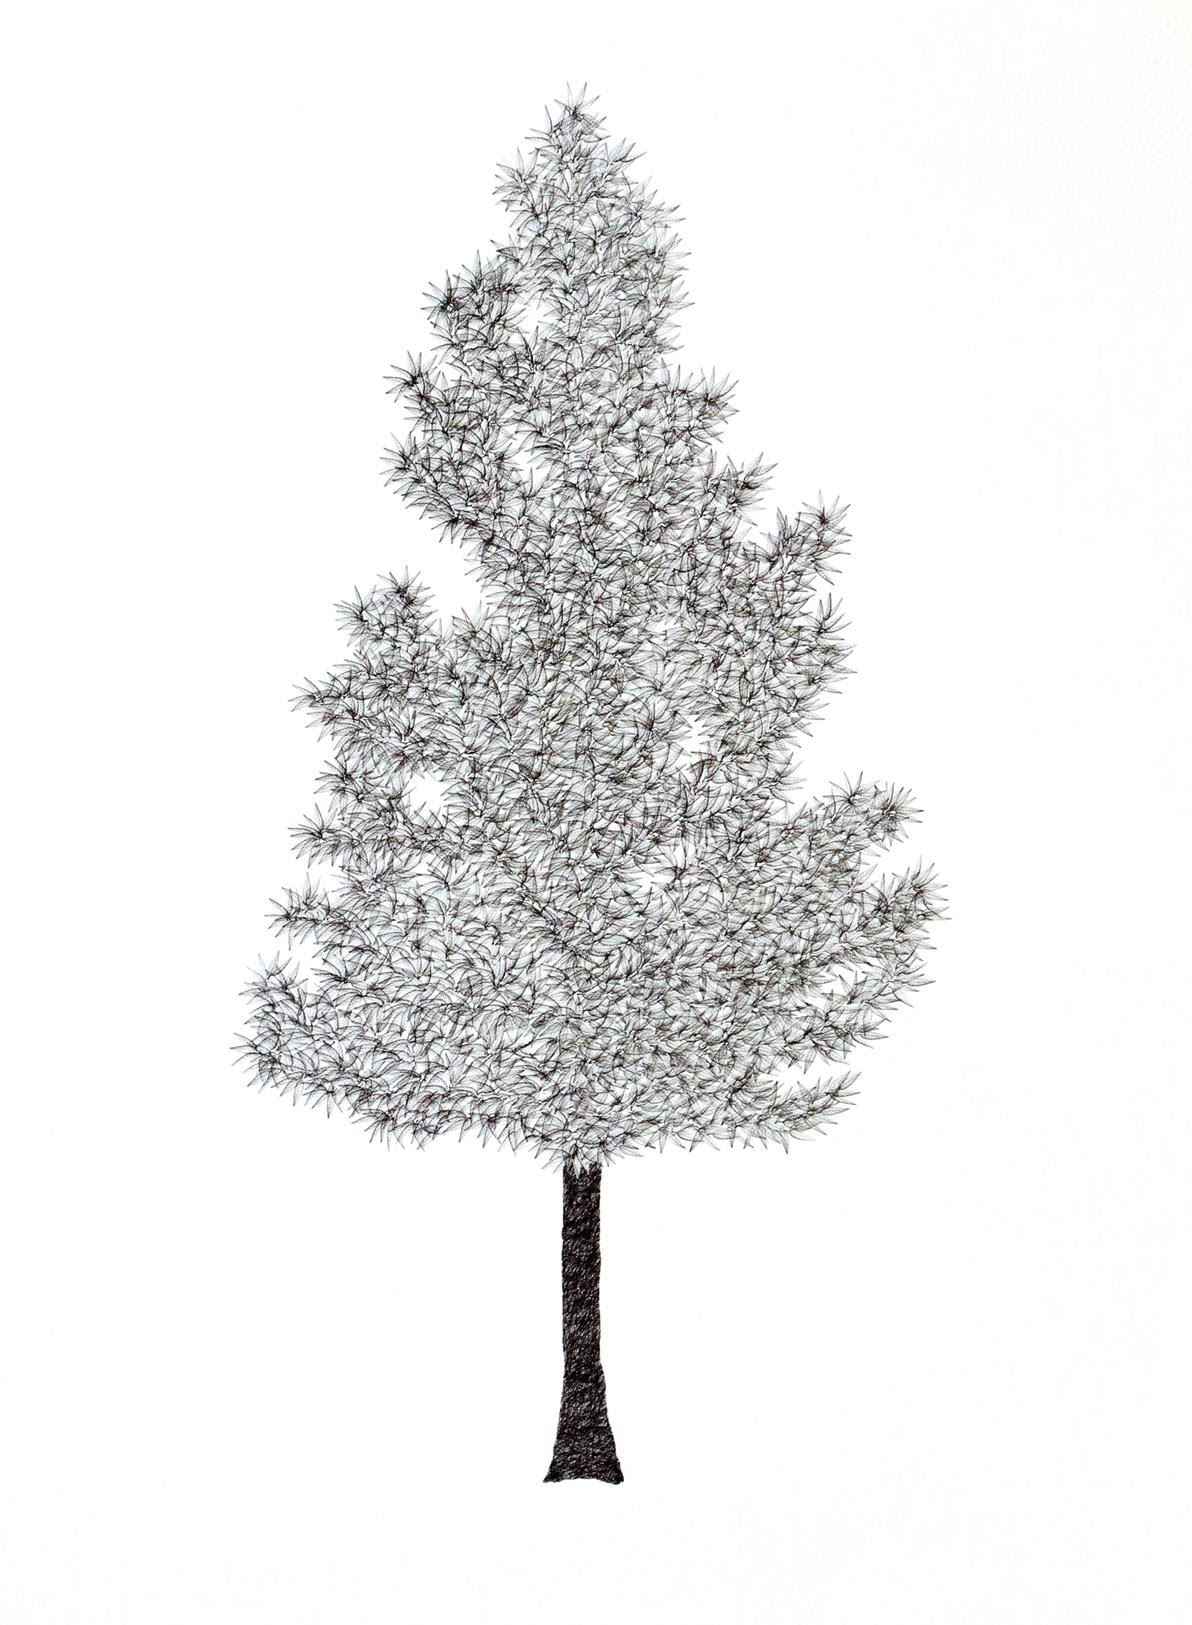 A drawing of a tree made with repeated stamps